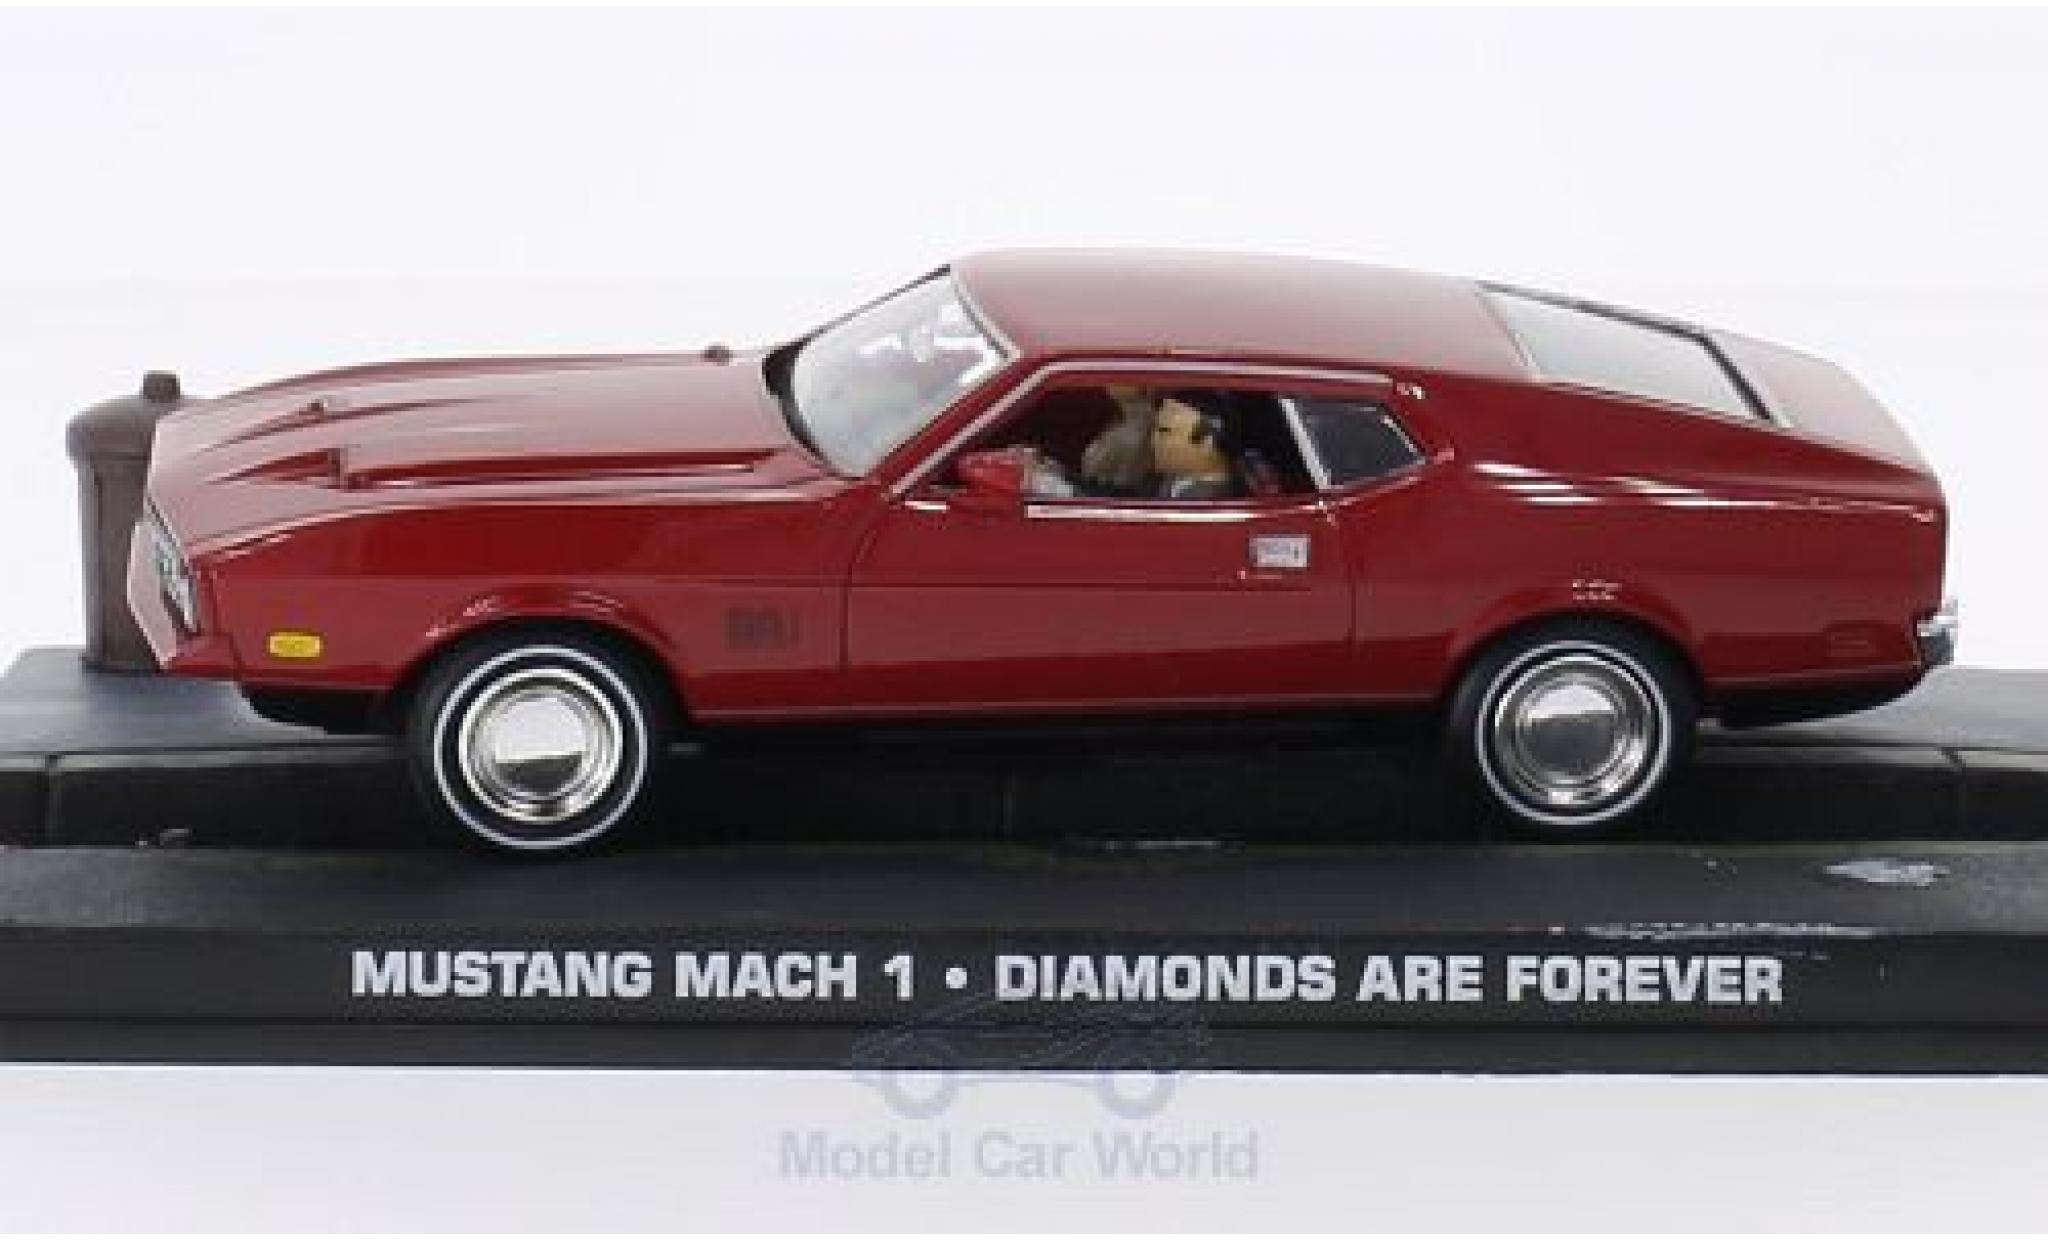 Ford Mustang 1/43 SpecialC 007 Mach 1 rouge James Bond 007 1965 Diamantenfieber ohne Vitrine